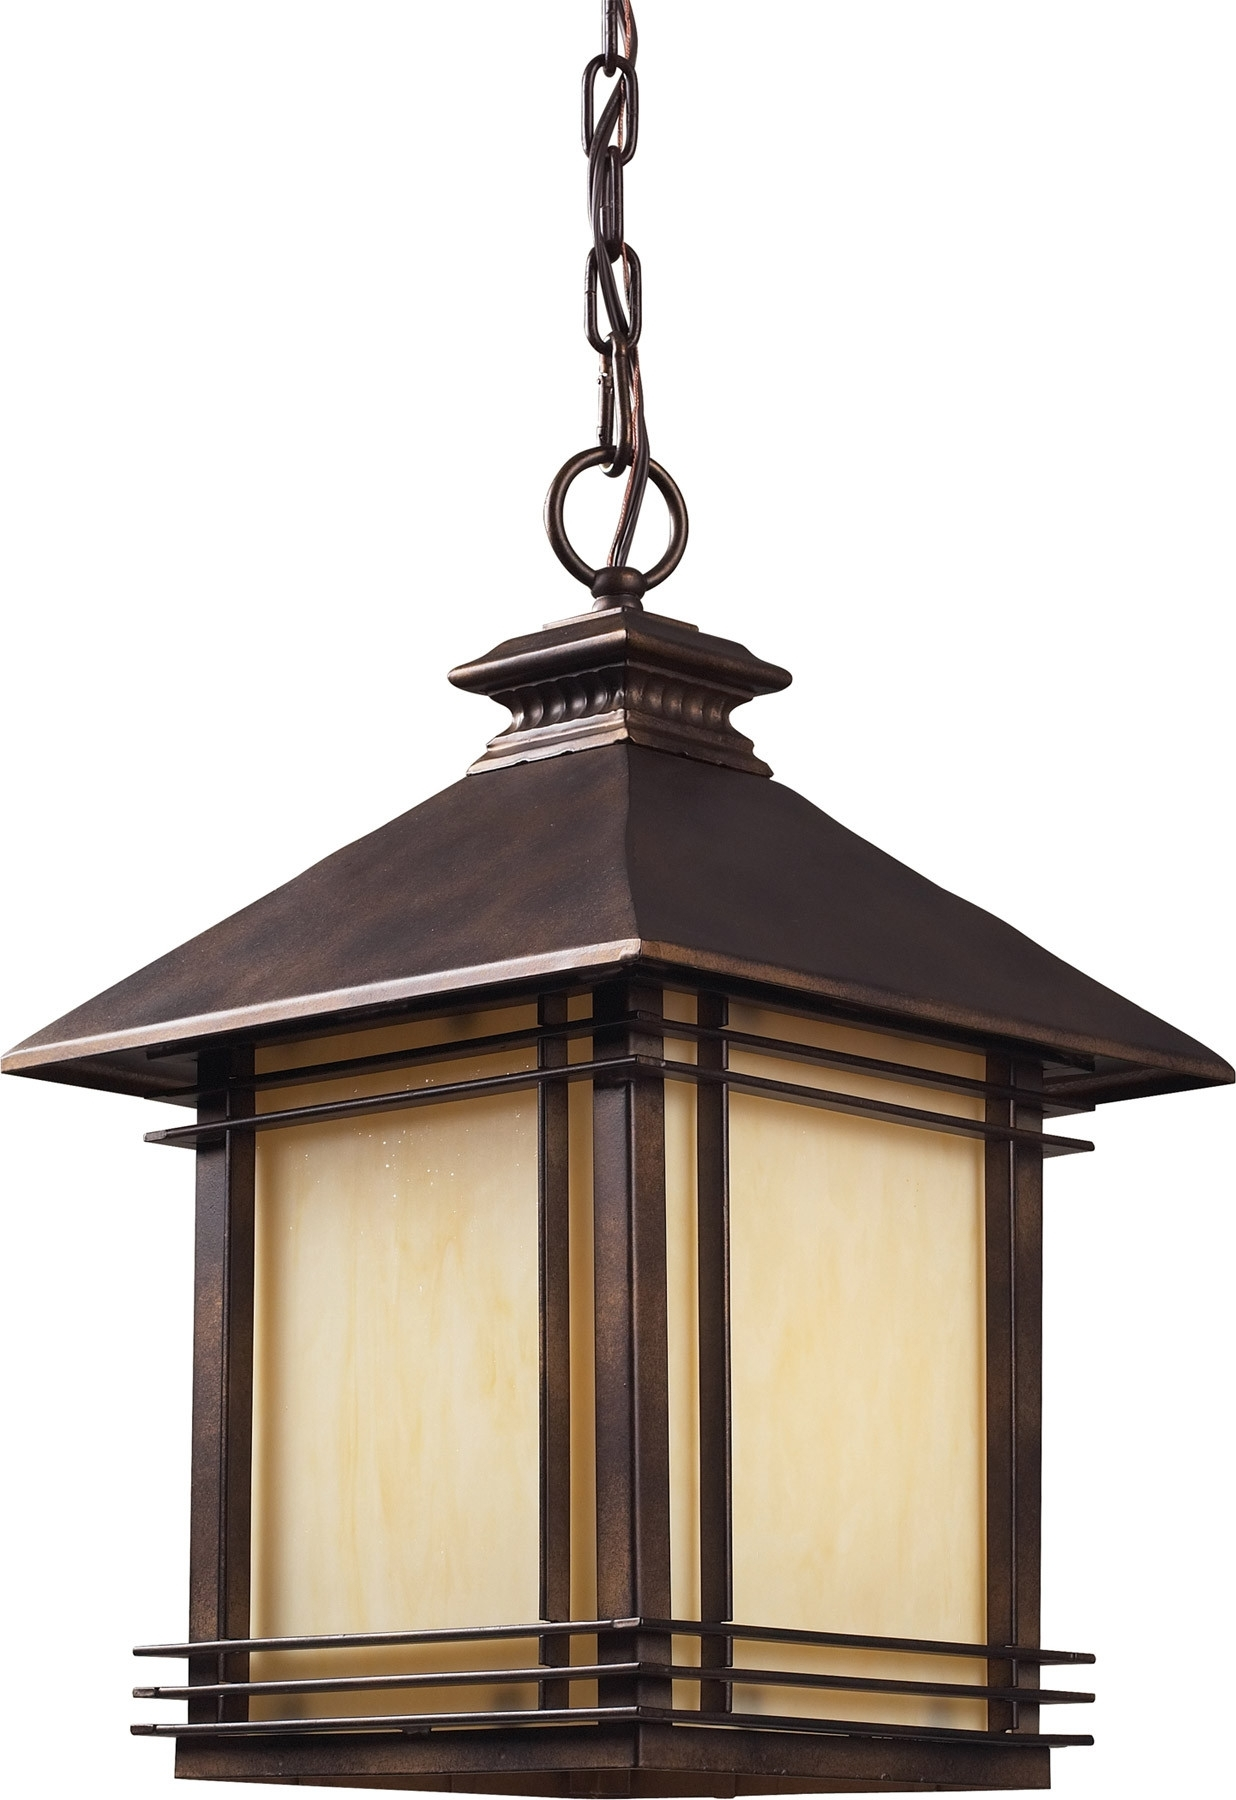 Solar Patio Lanterns Best Of Battery Operated Outdoor Hanging Lights in Outdoor Battery Lanterns for Patio (Image 19 of 20)